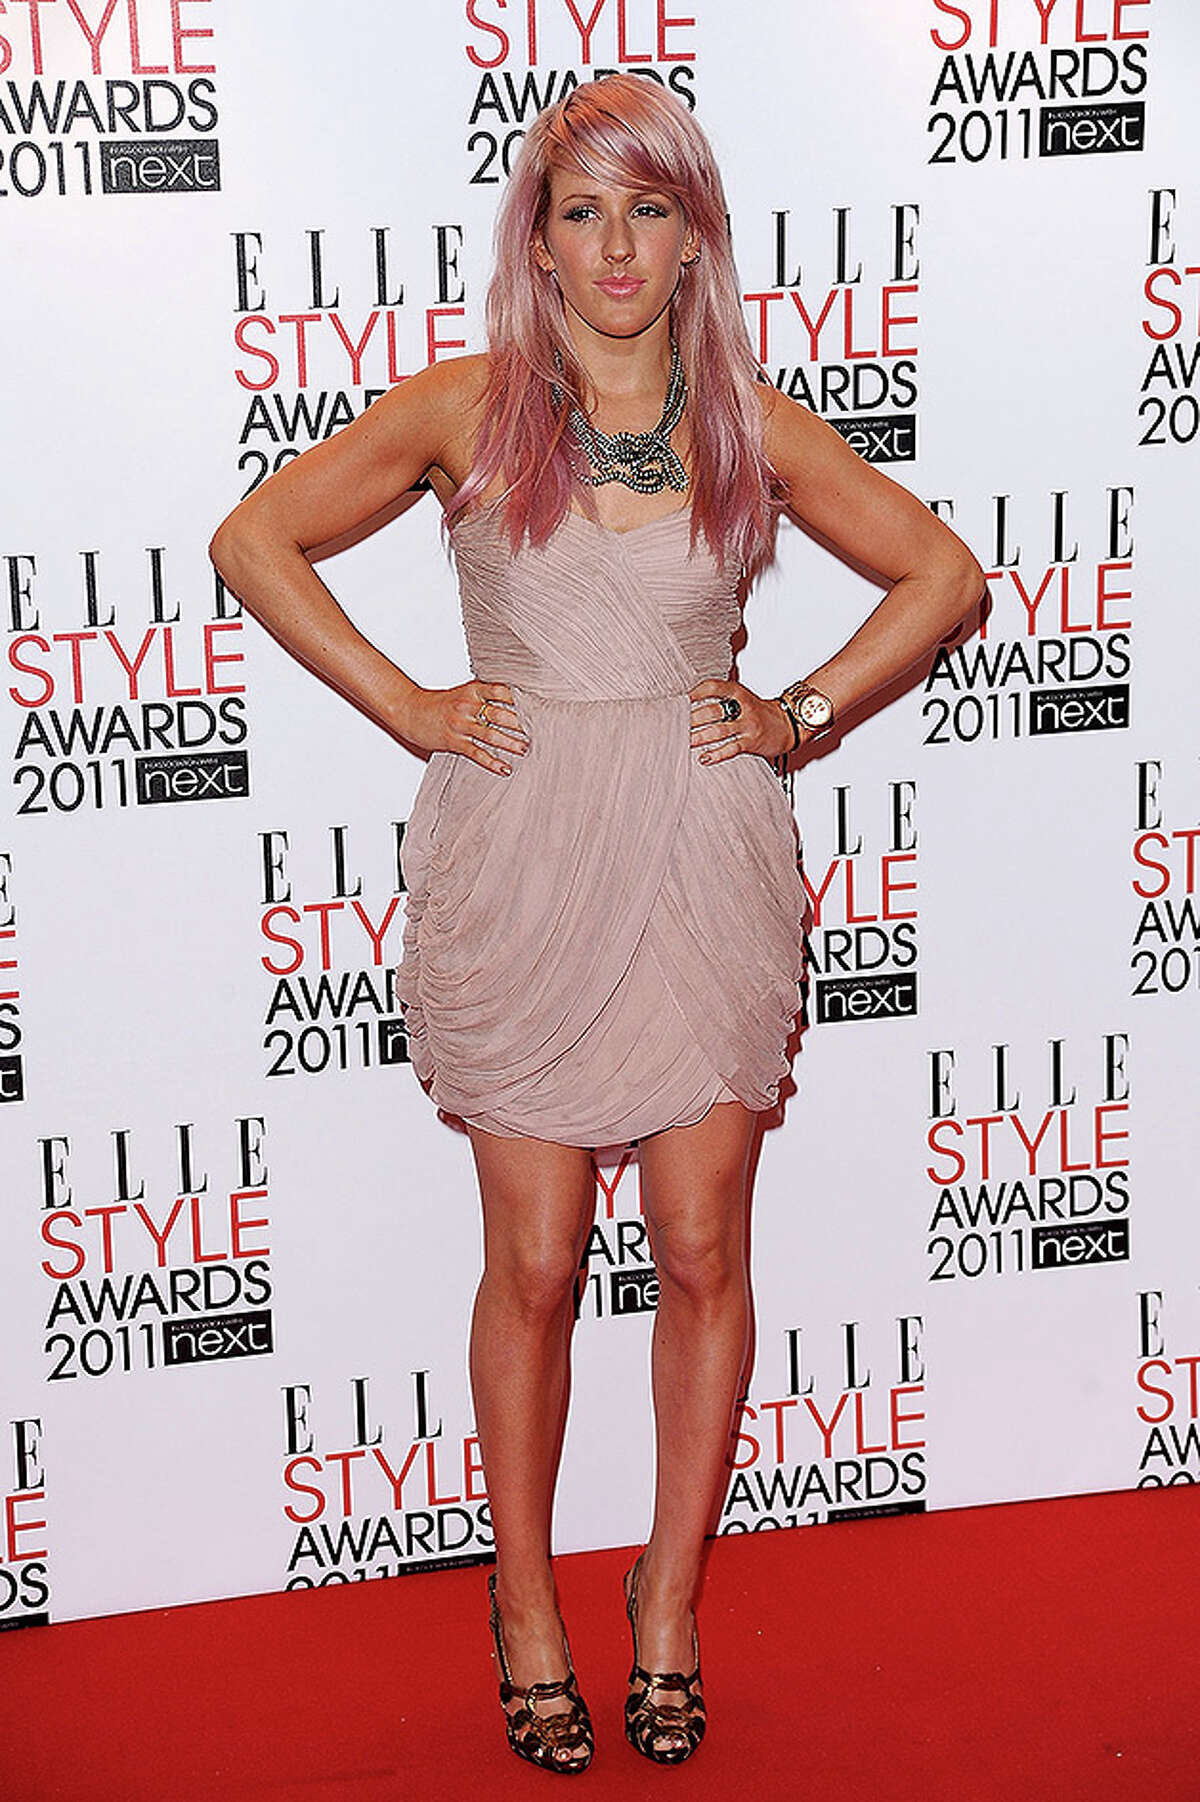 LONDON, ENGLAND - FEBRUARY 14: Singer Ellie Goulding attends the 2011 ELLE Style Awards at the Grand Connaught Rooms on February 14, 2011 in London, England. (Photo by Ian Gavan/Getty Images) *** Local Caption *** Ellie Goulding